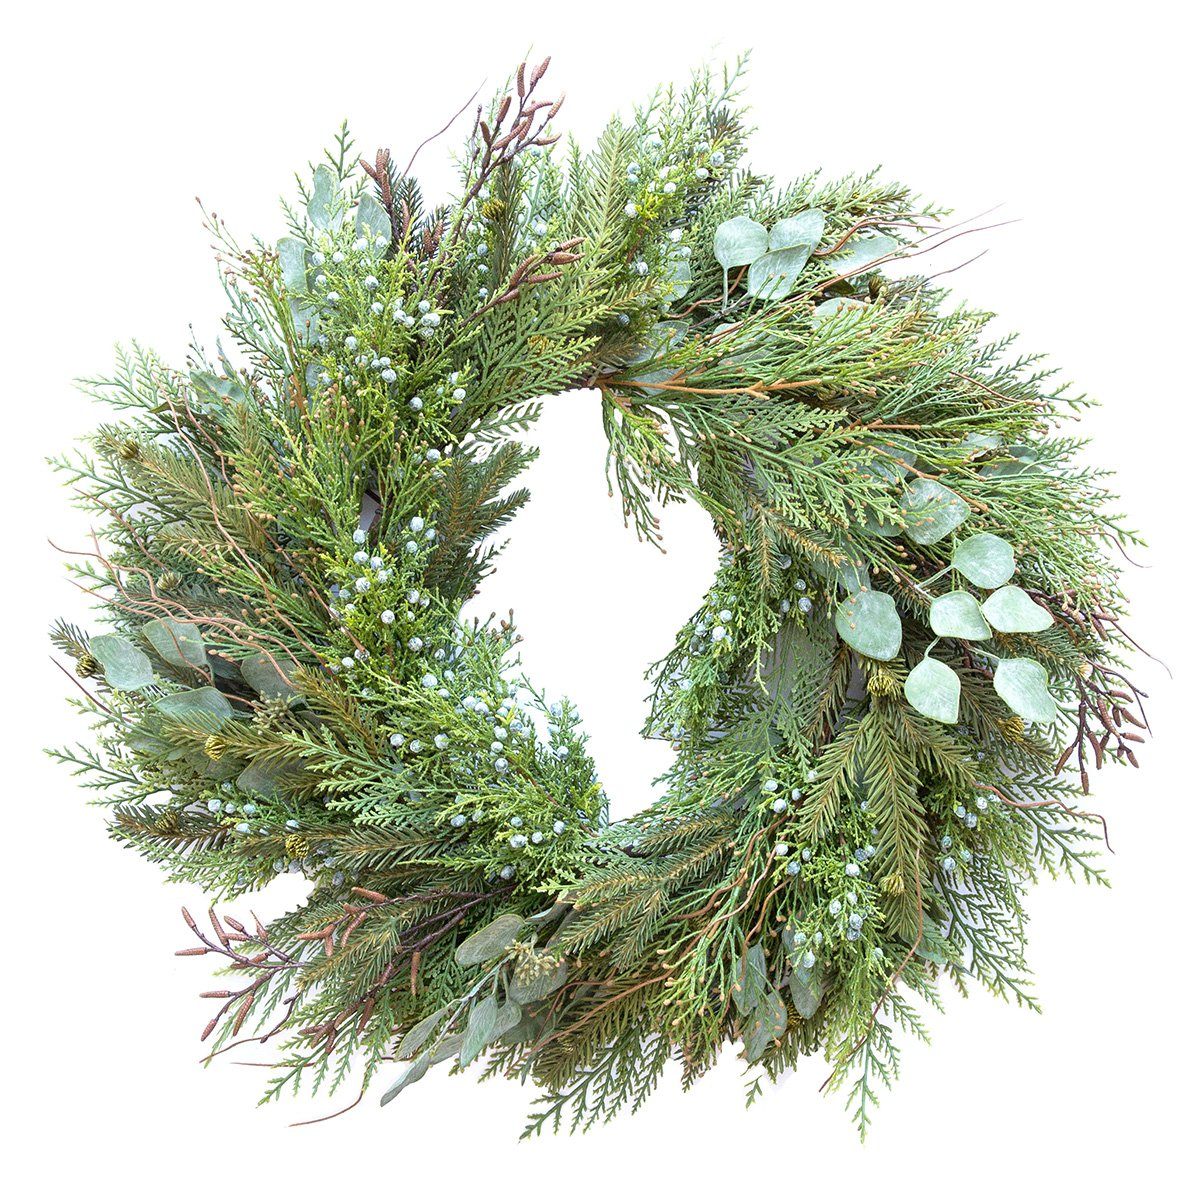 Faux_Juniper_Cedar_Wreath_1.jpg